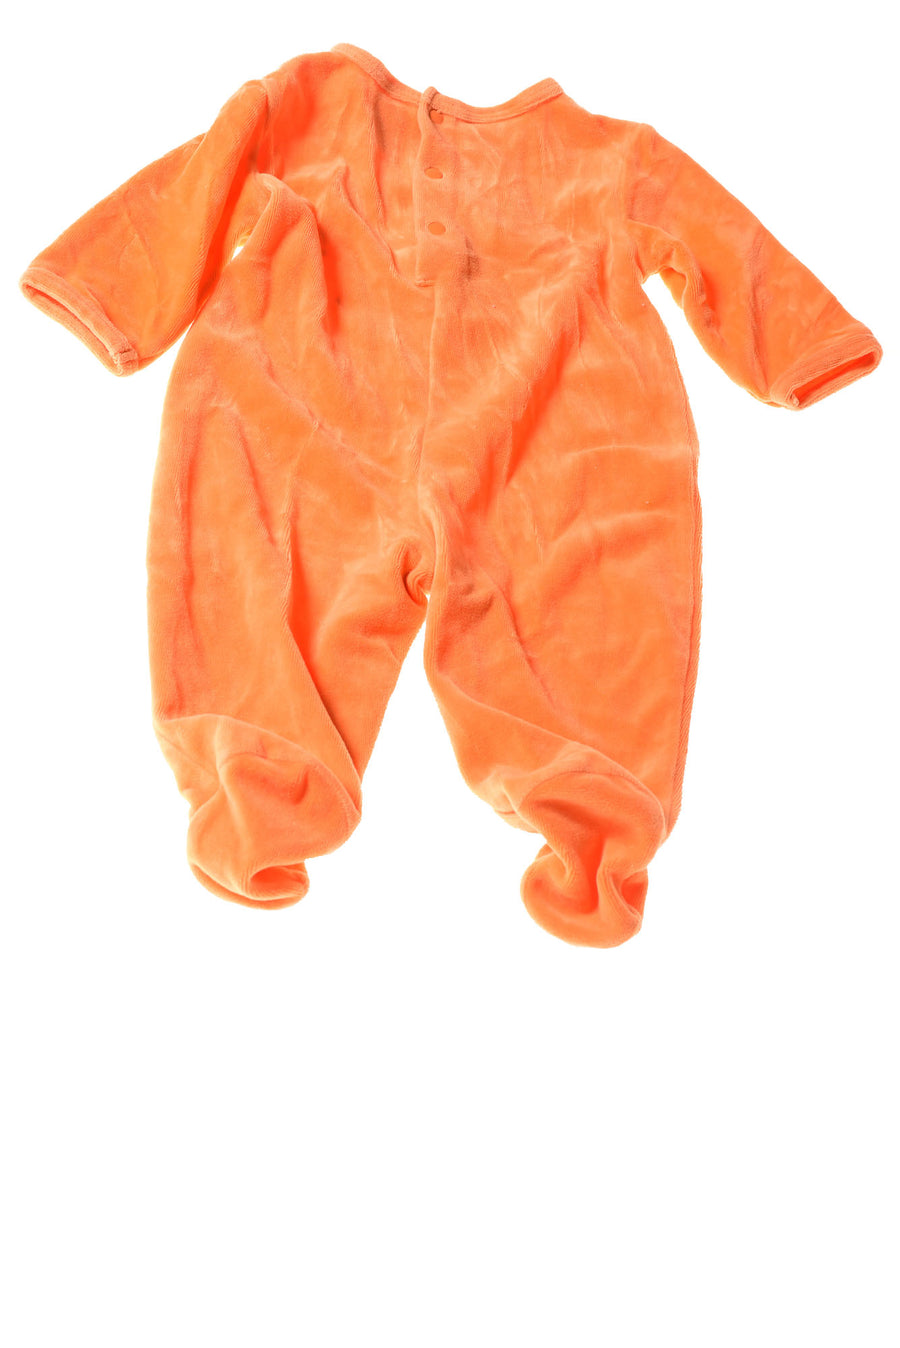 USED Miniwear Baby Girl's Sleeper 3-6 Months Orange / Print